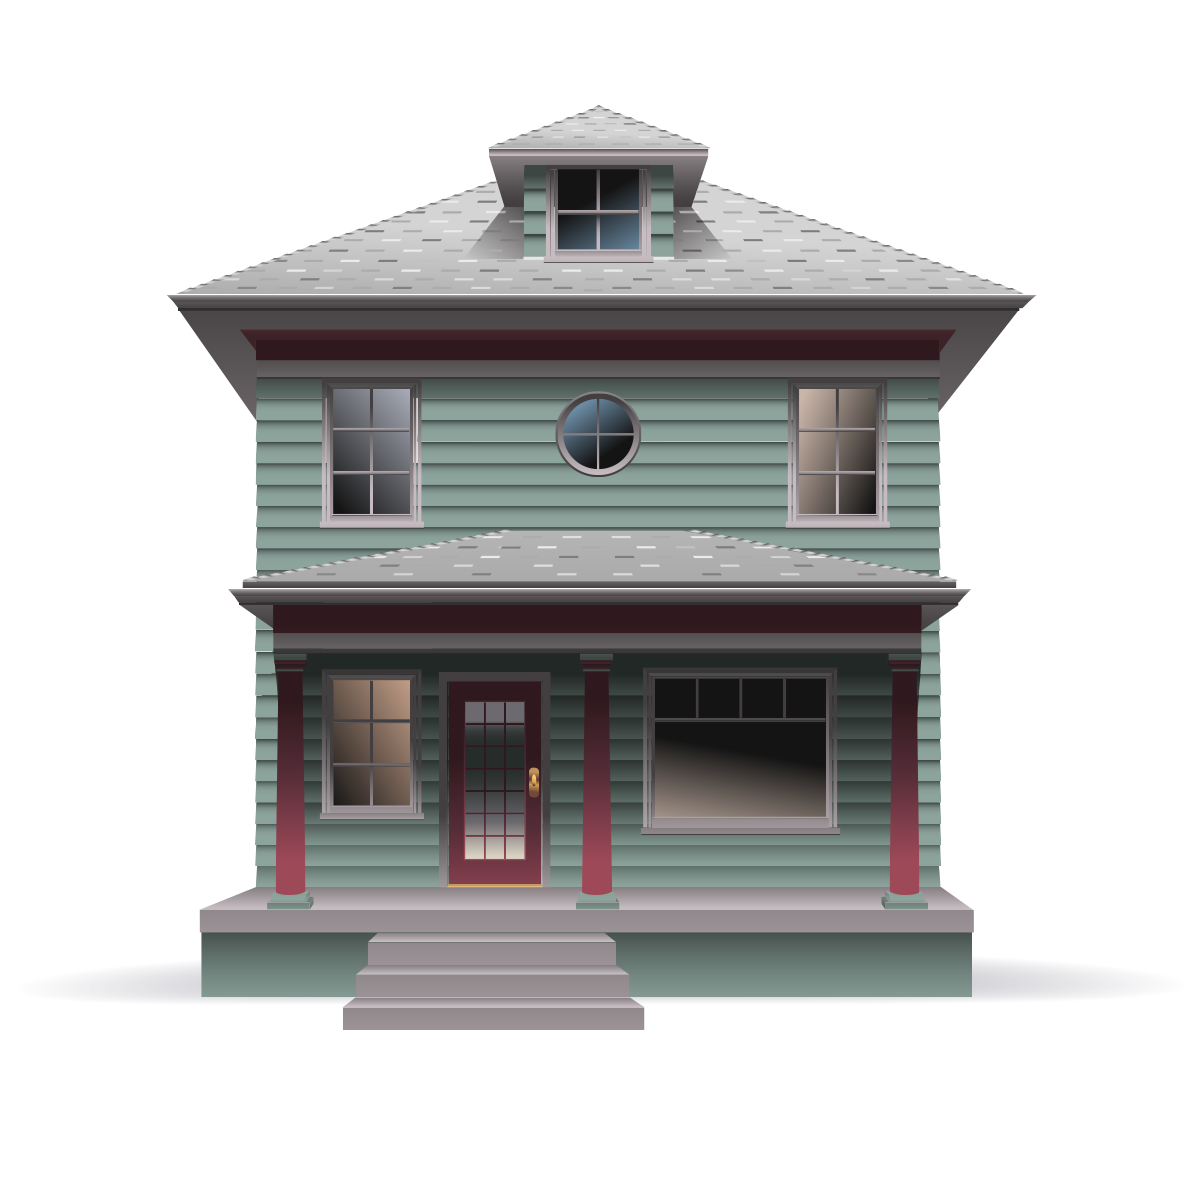 Green two story house with grey shingles and red beams illustration